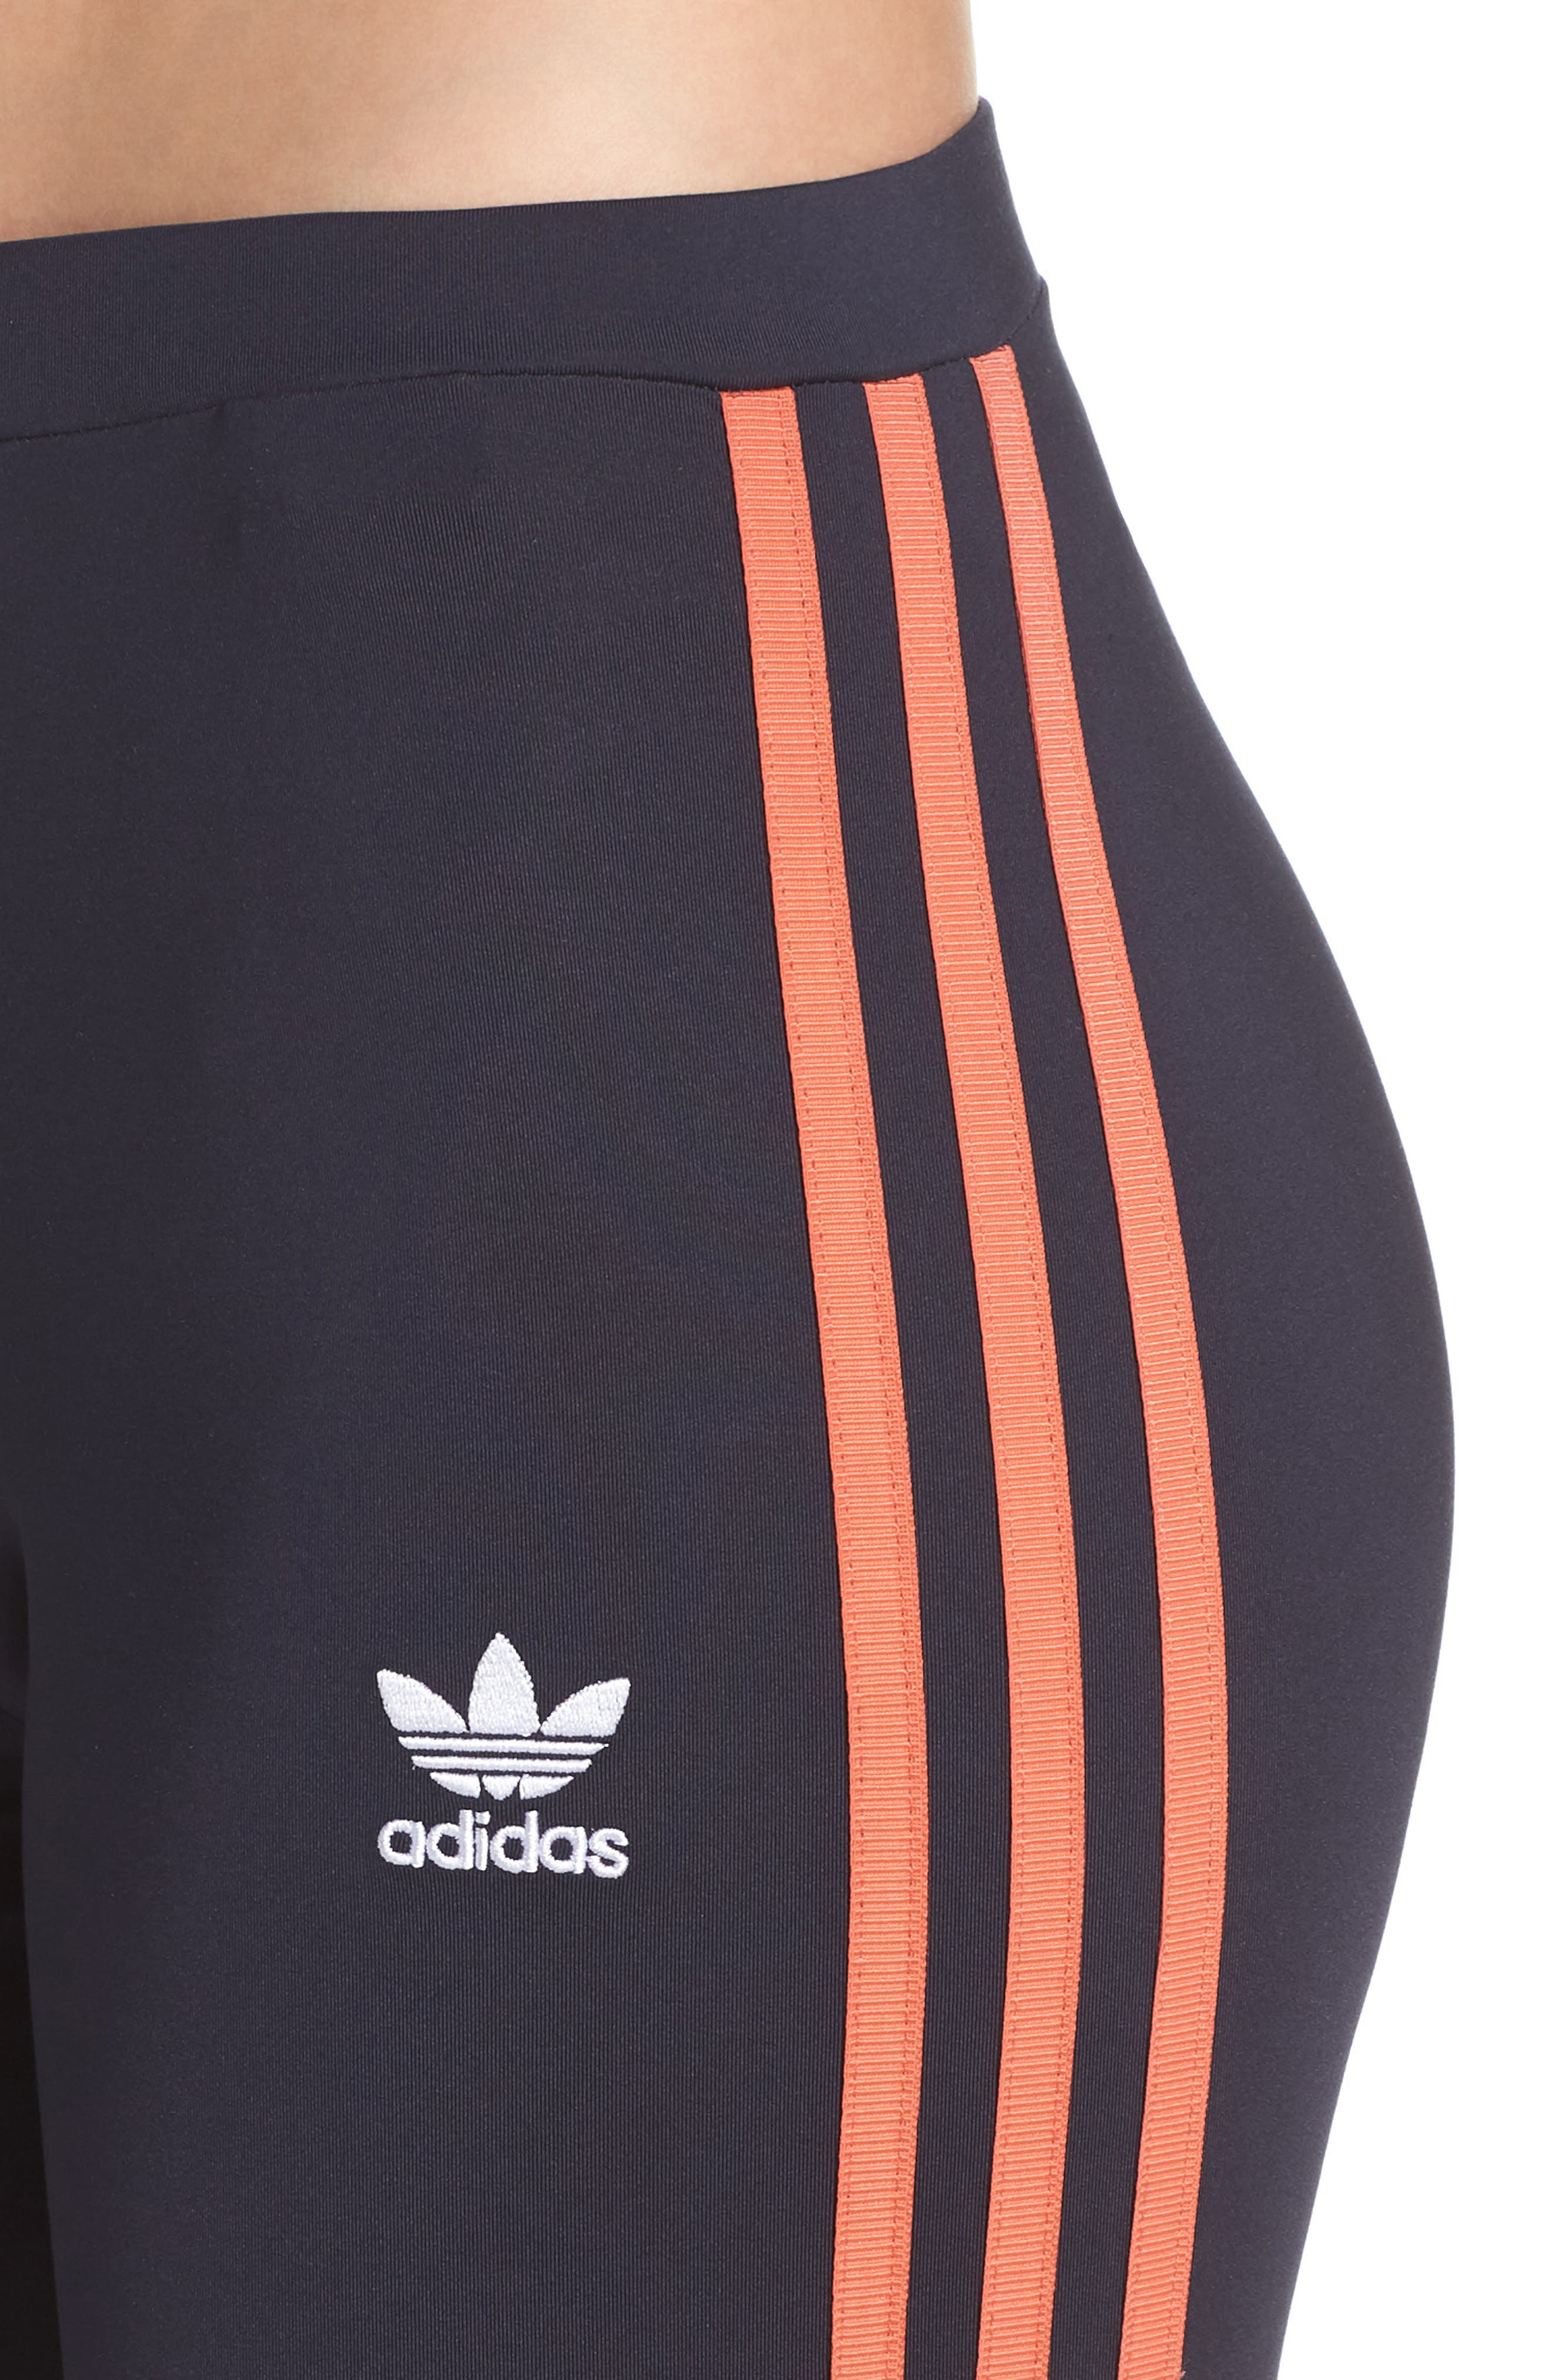 ADIDAS,                             Active Icons Tights,                             Alternate thumbnail 4, color,                             408